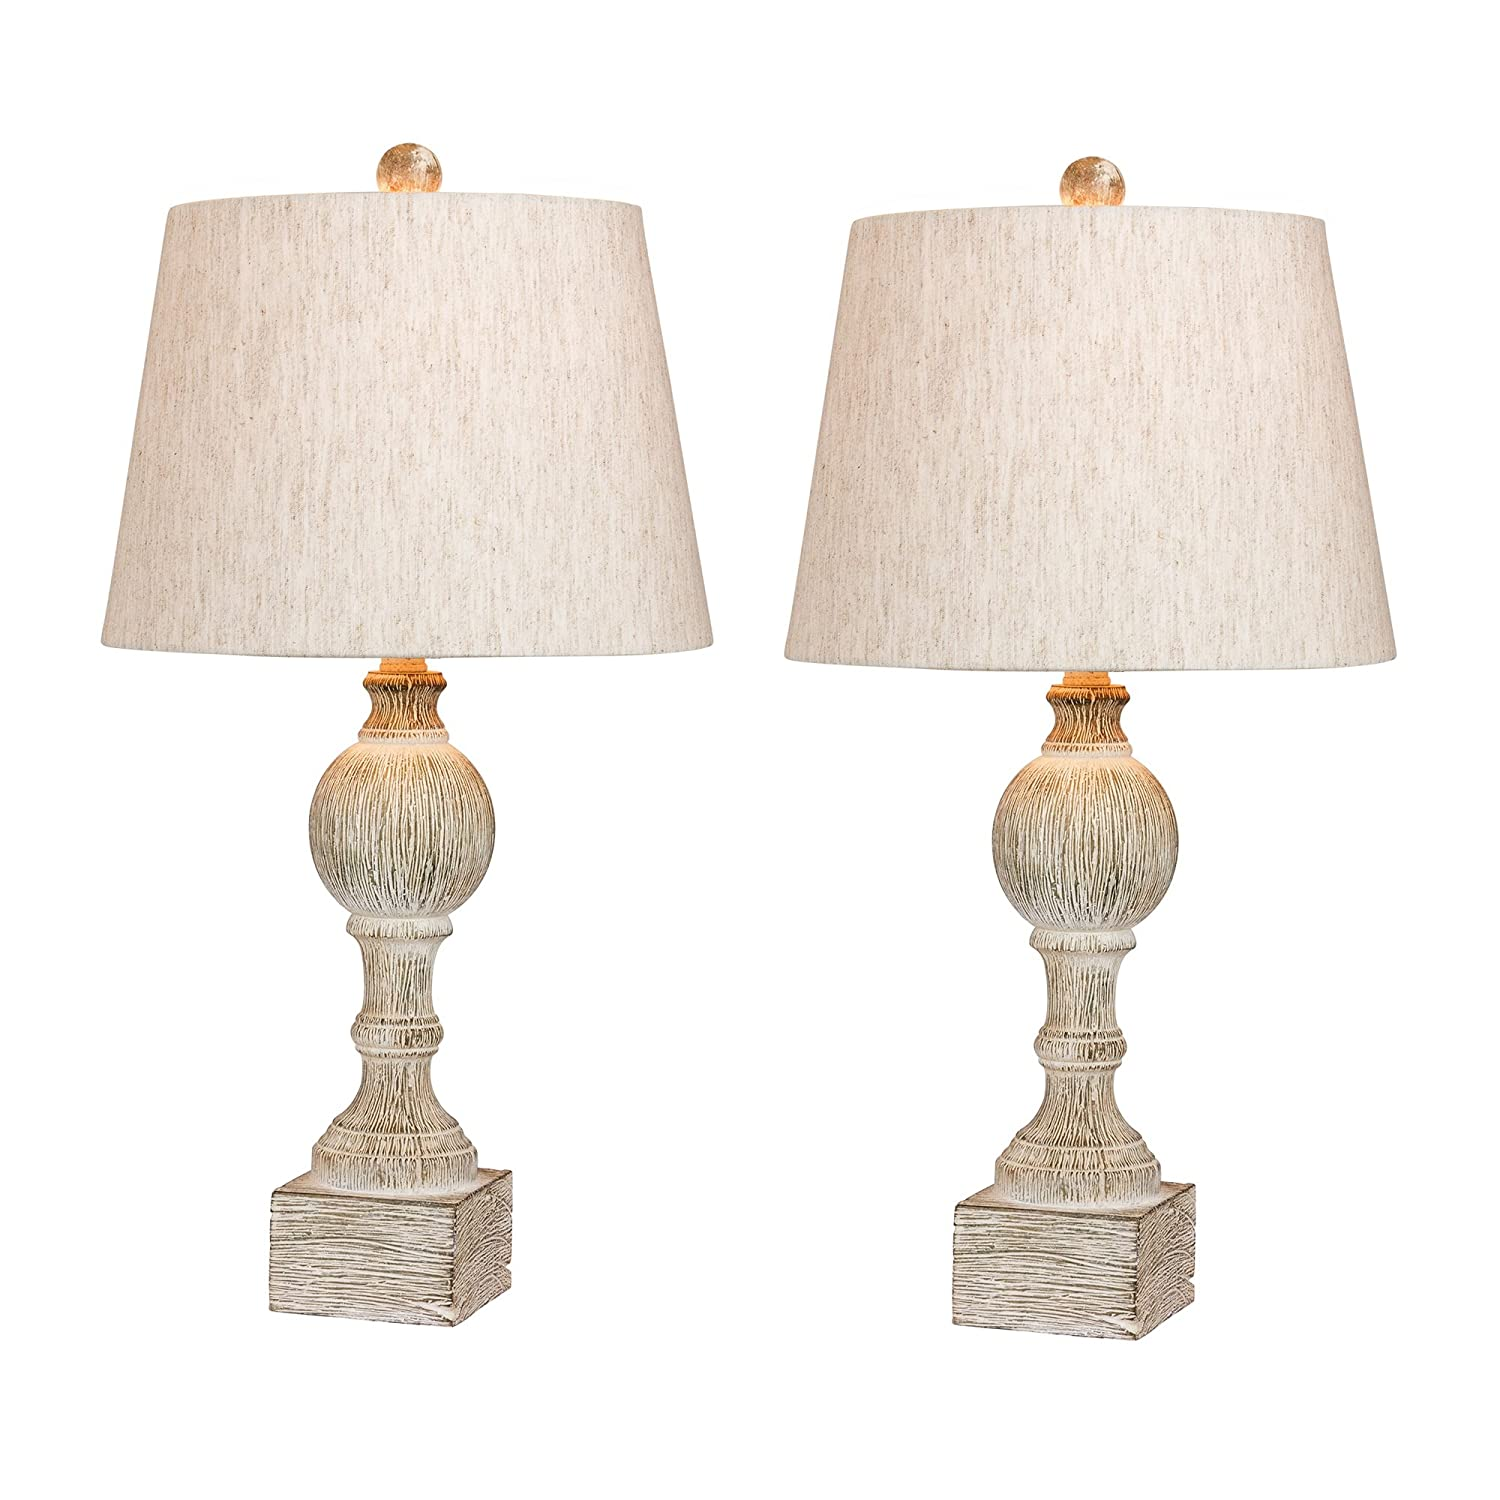 Cory Martin W-6239CAW-2PK Fangio Lighting's #6239CAW-2PK Pair of 26.5 in. Distressed, Sculpted Column Resin Table Lamps in a Cottage Antique White Finish 2 Piece